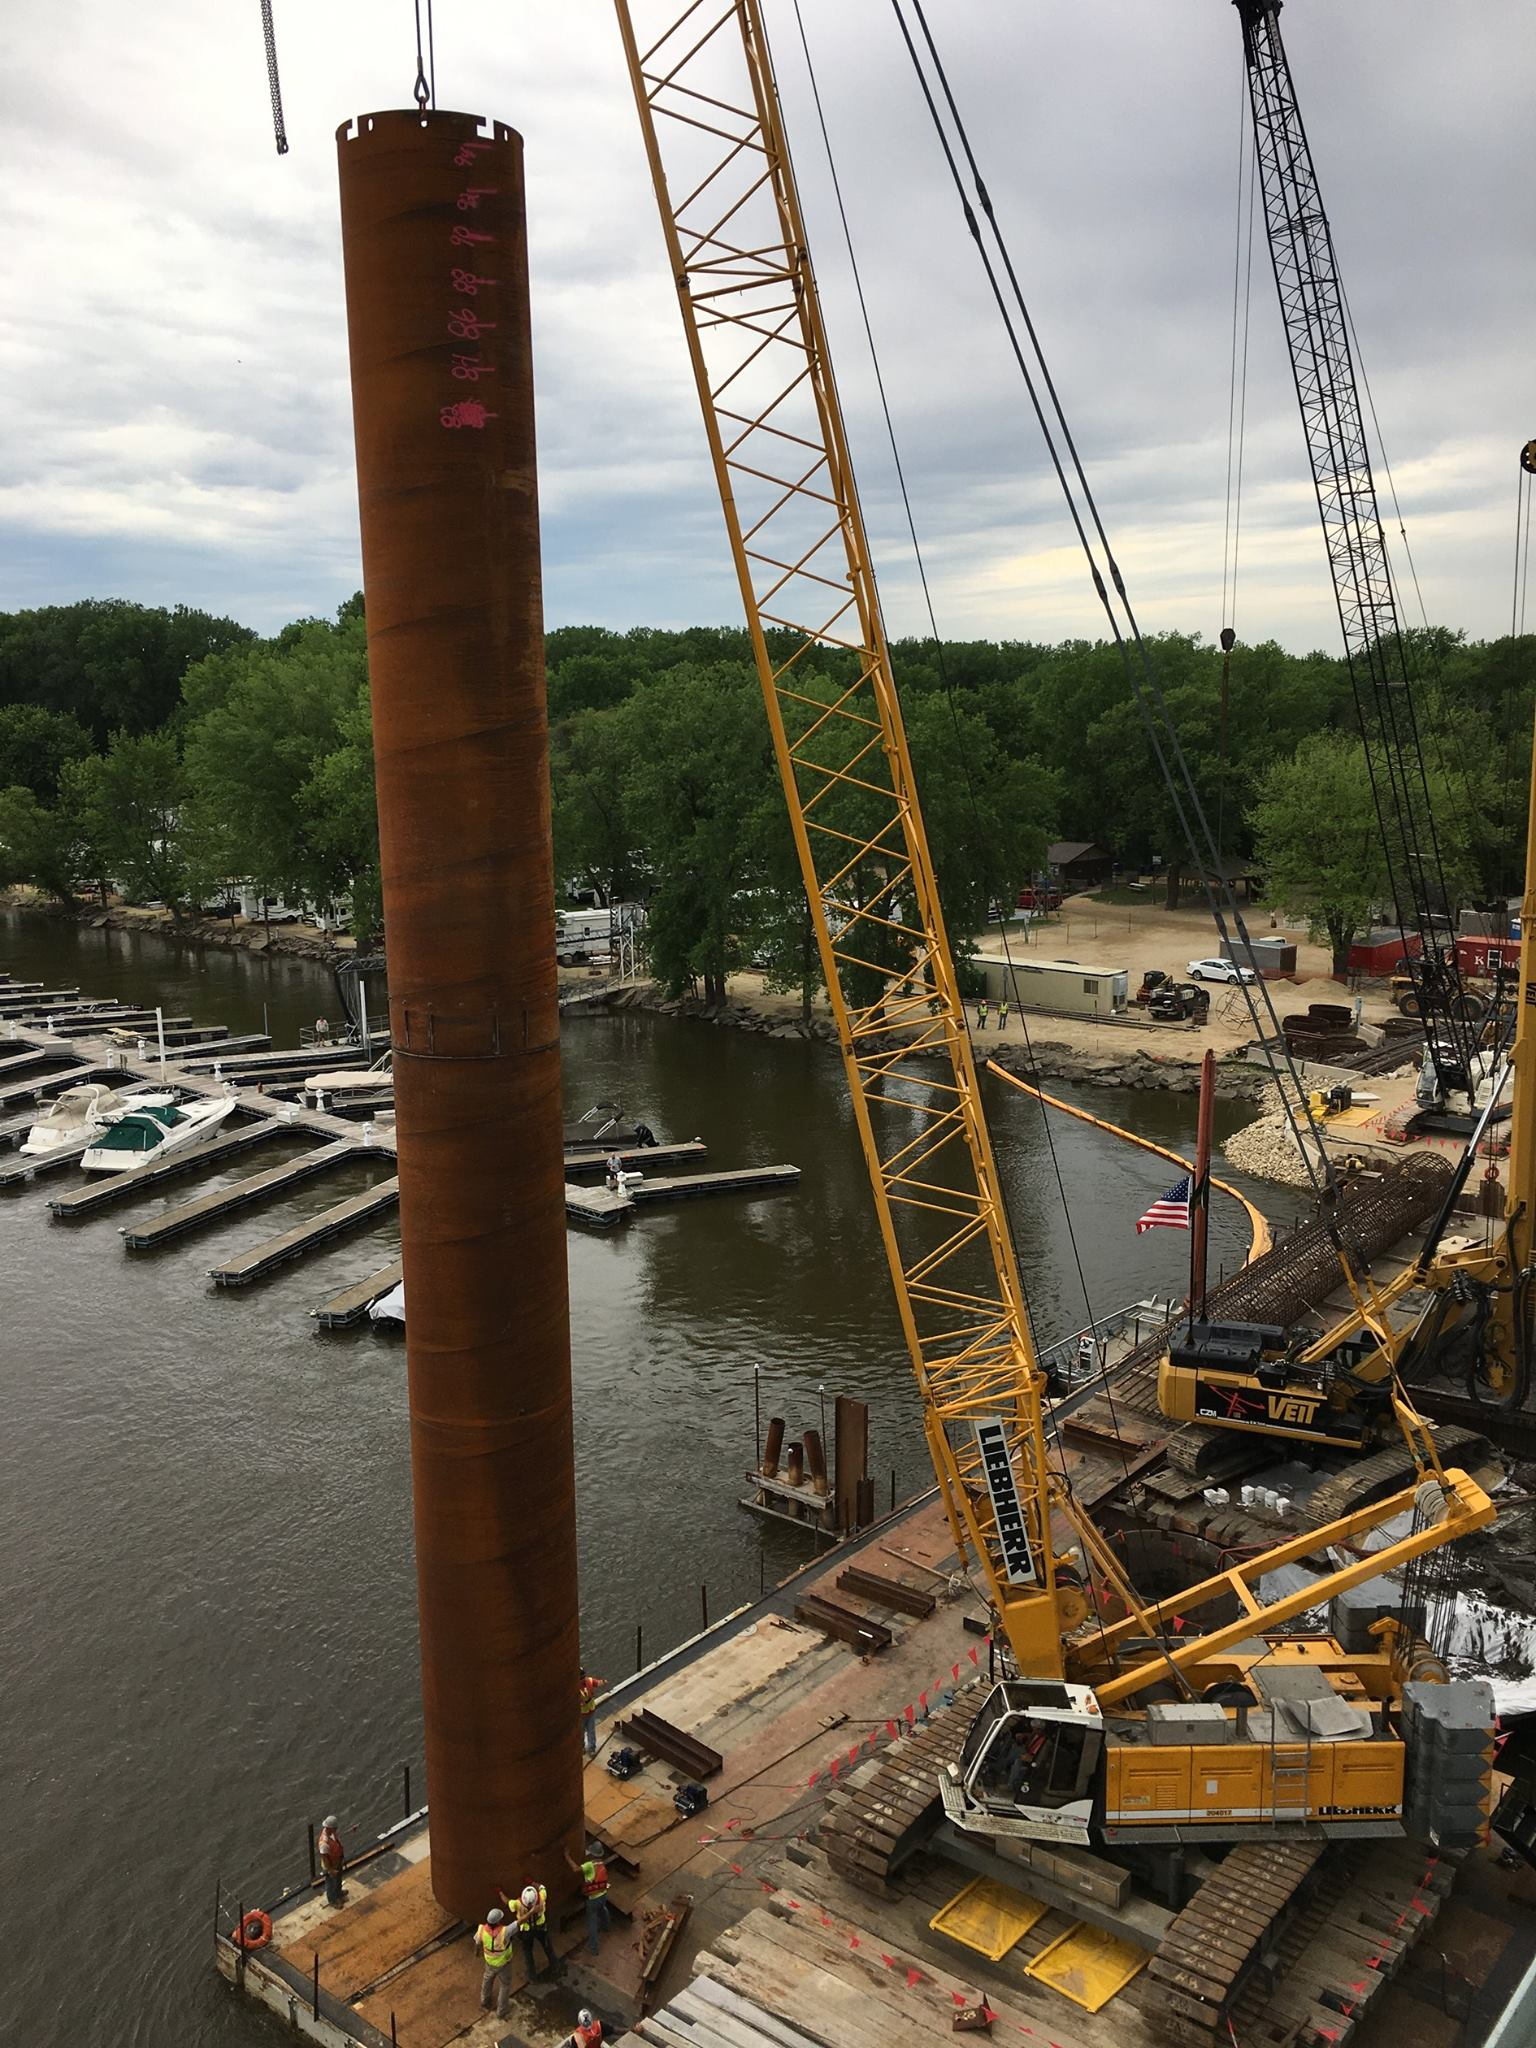 View of river bridge Pier 2 construction in the Mississippi River in June 2018. Construction crews use boats and barges to access this pier for construction.